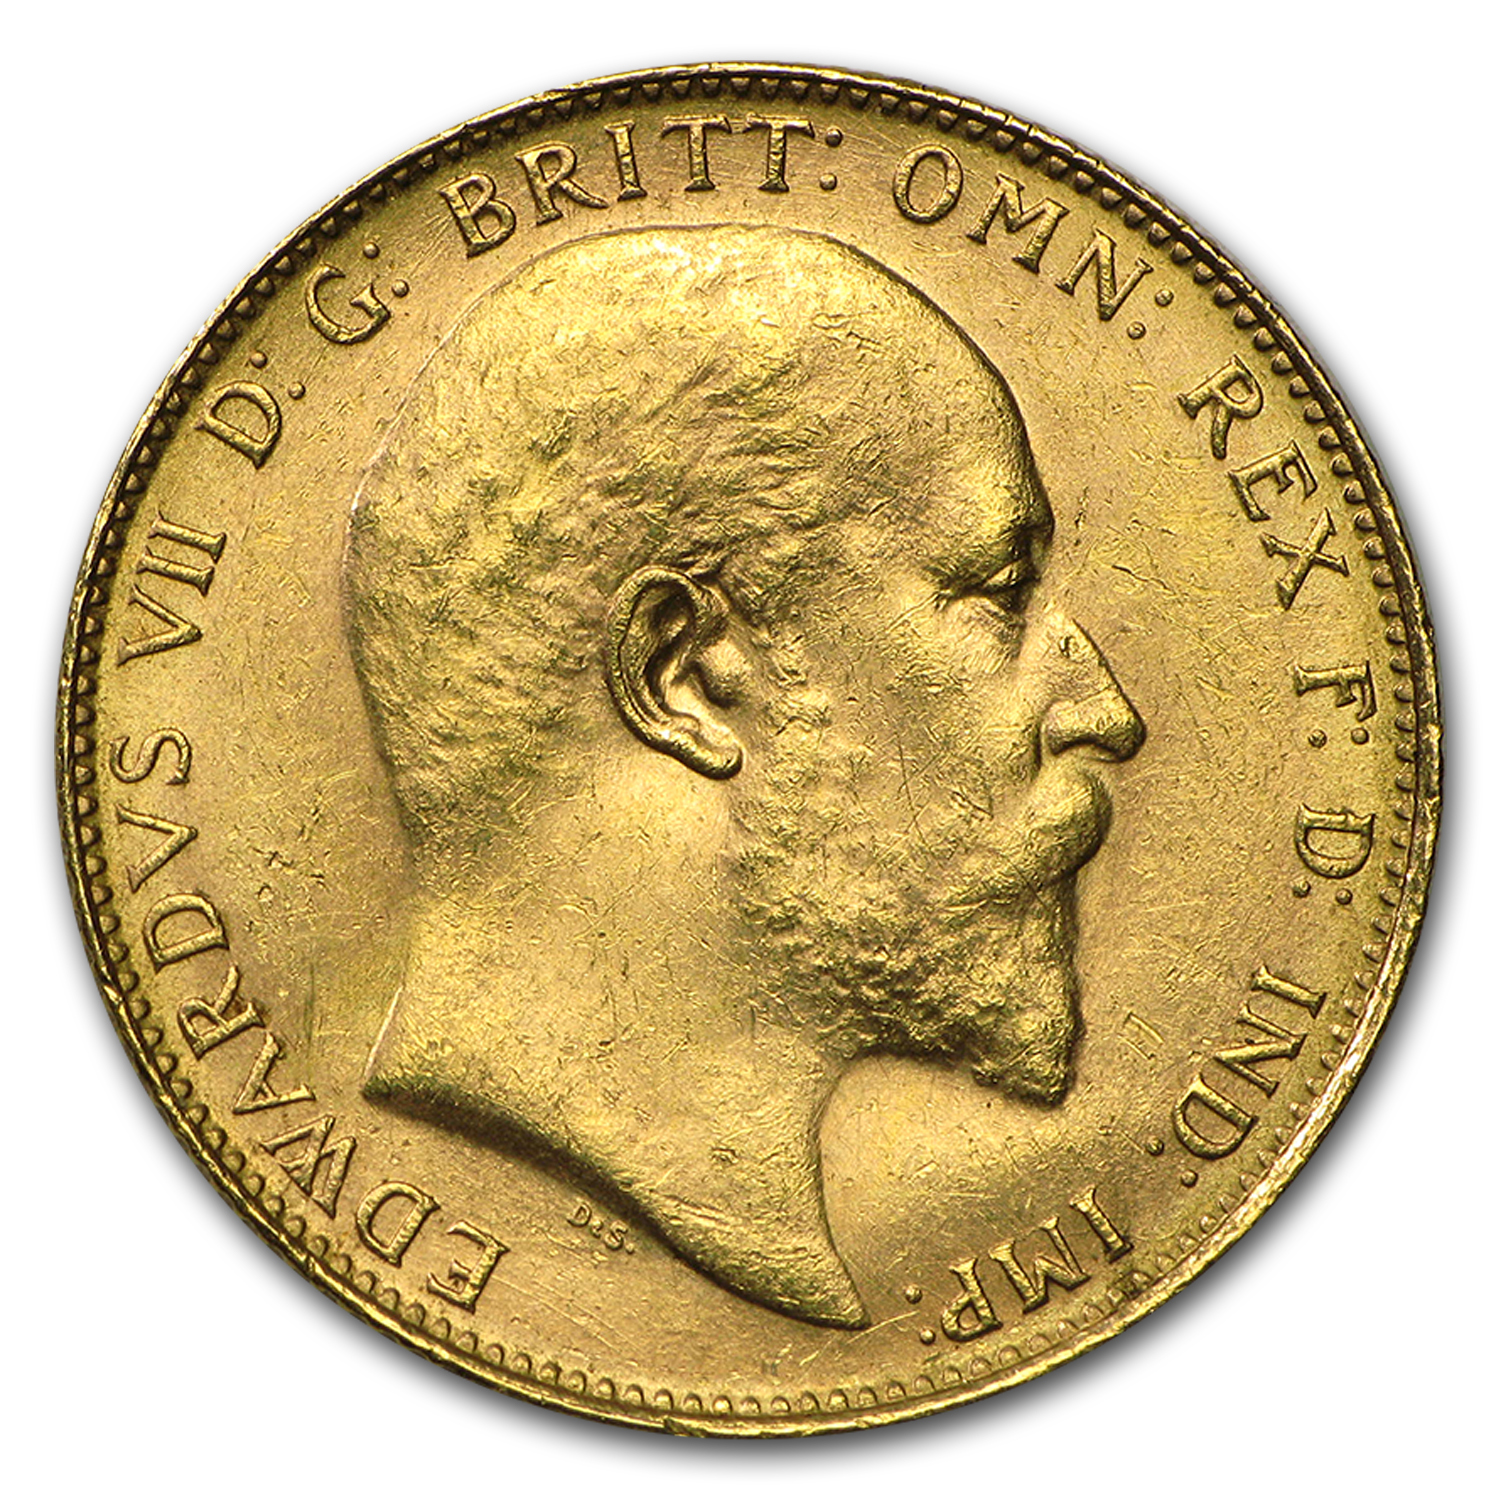 1902-1910-P Australia Gold Sovereign Edward VII AU